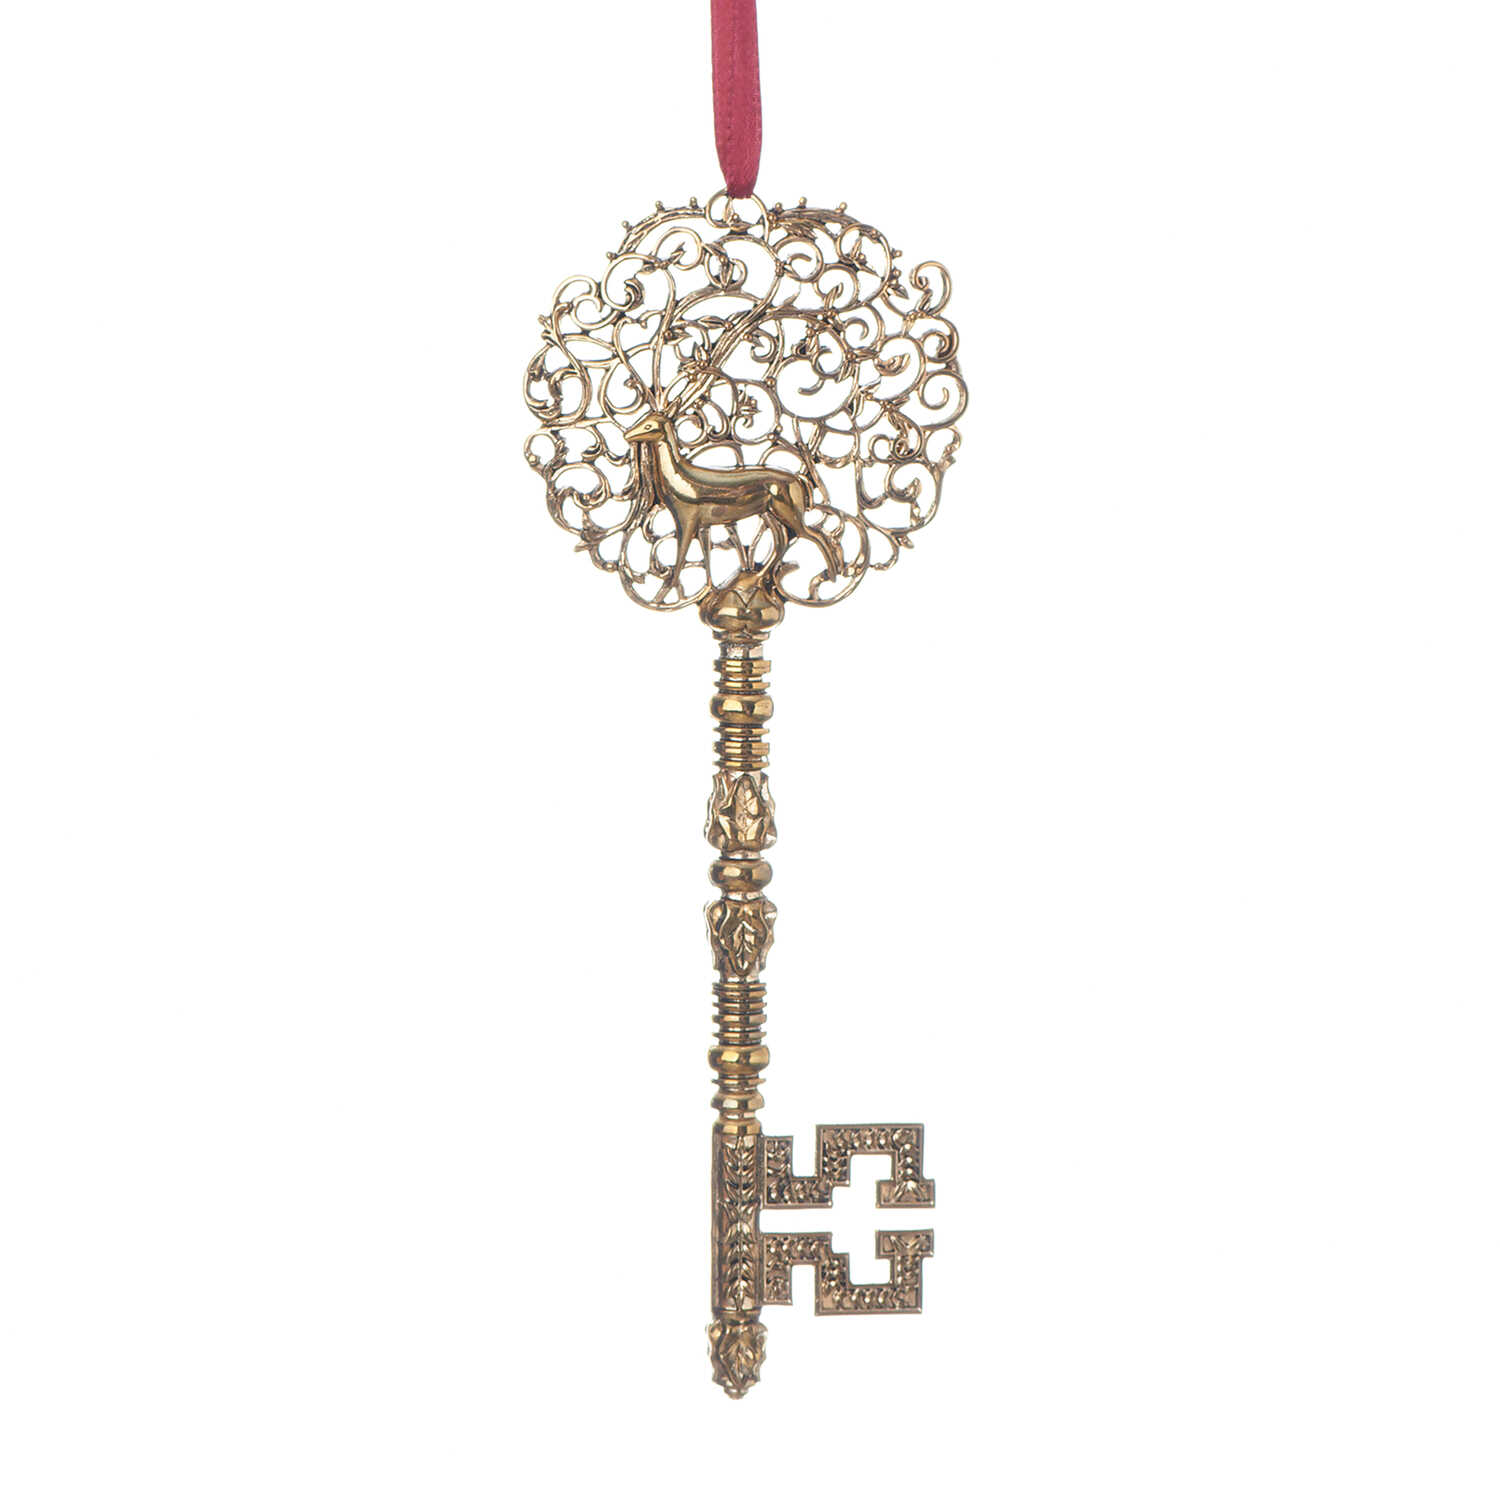 Roman  Santa's Book of Secrets Key  Multicolored  Metal, Fabric  1 pk Christmas Ornament